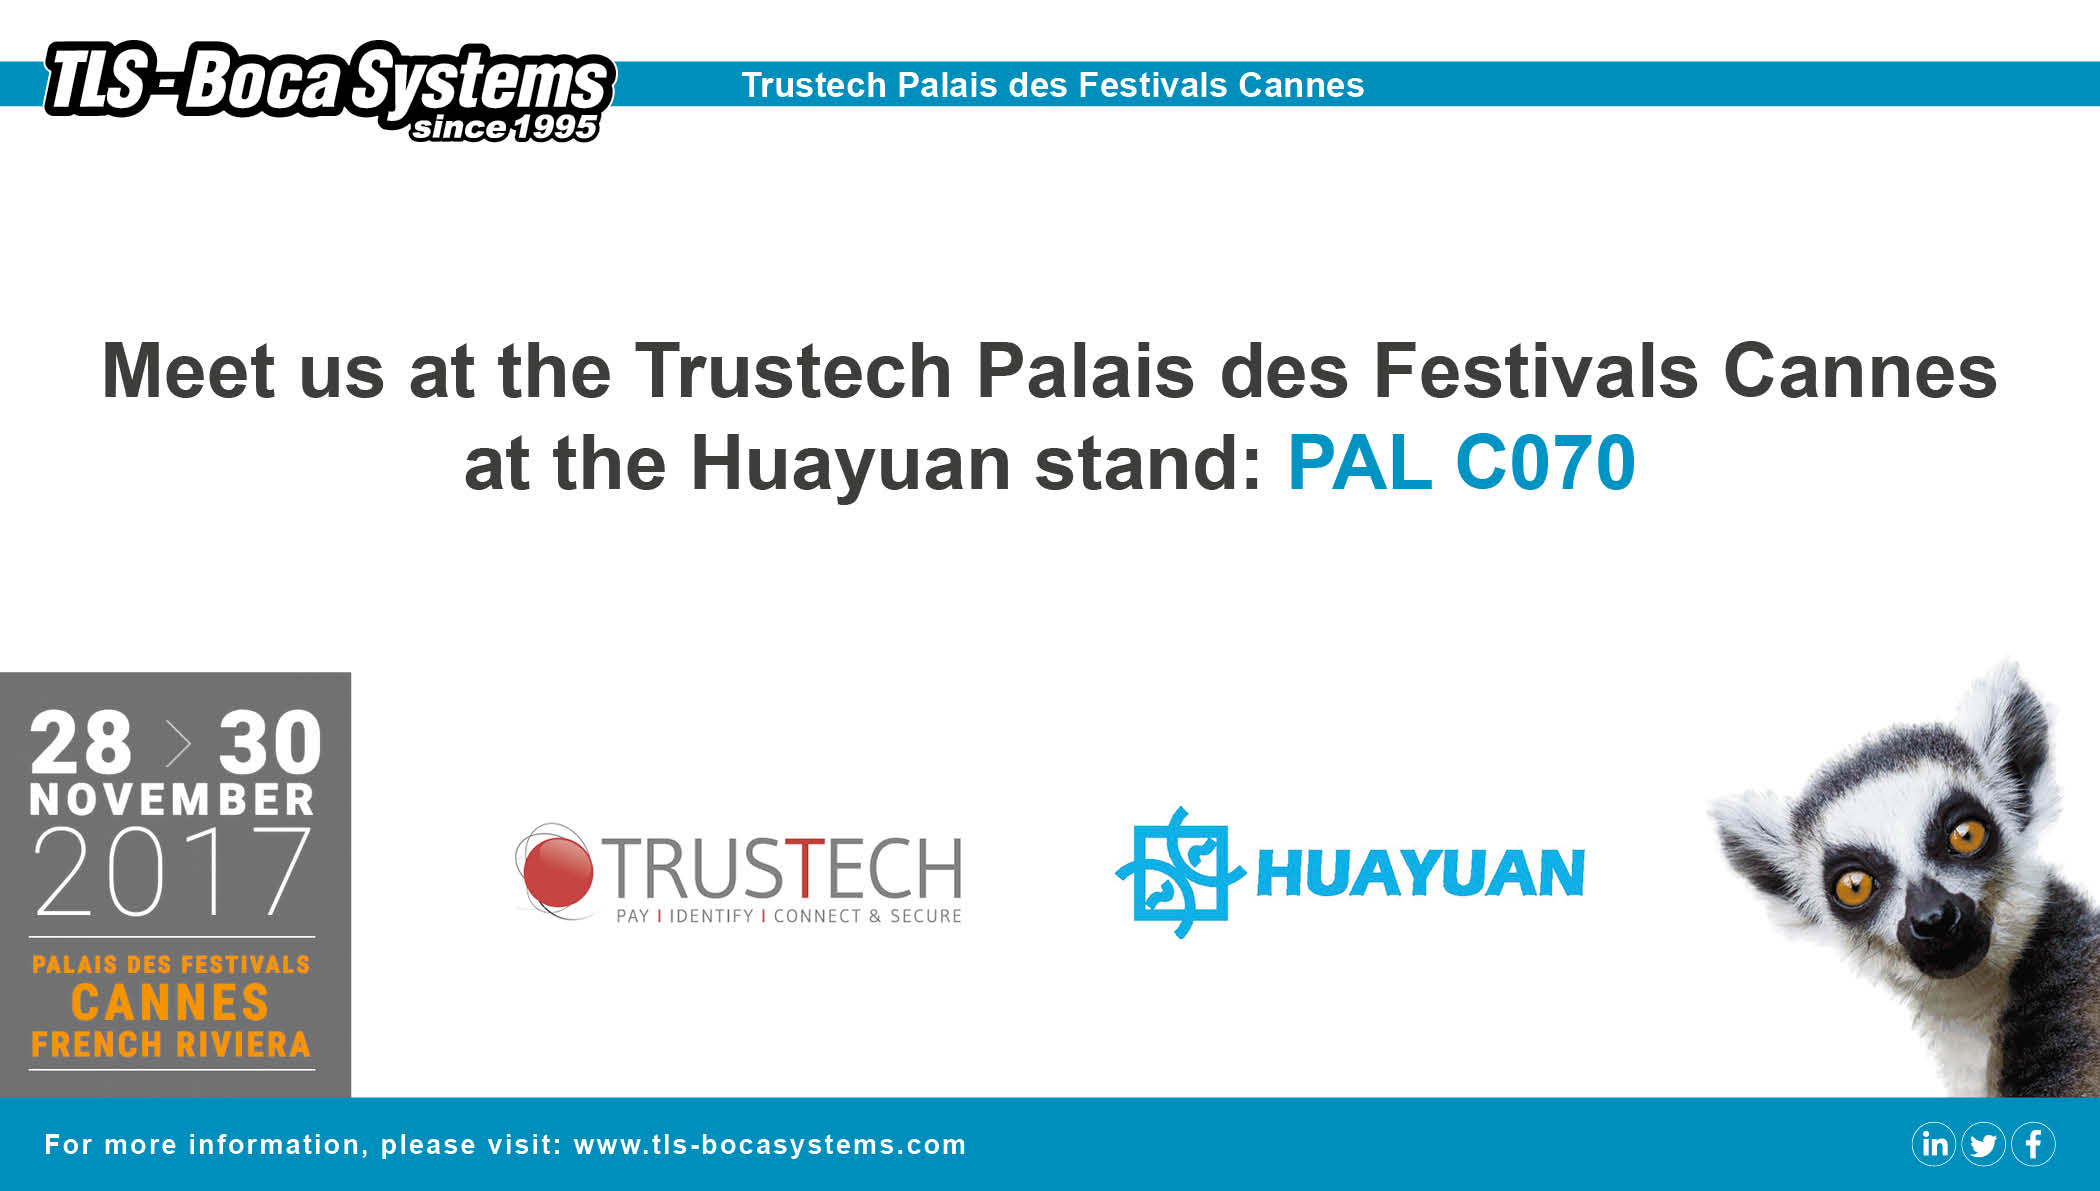 We are at Trustech!